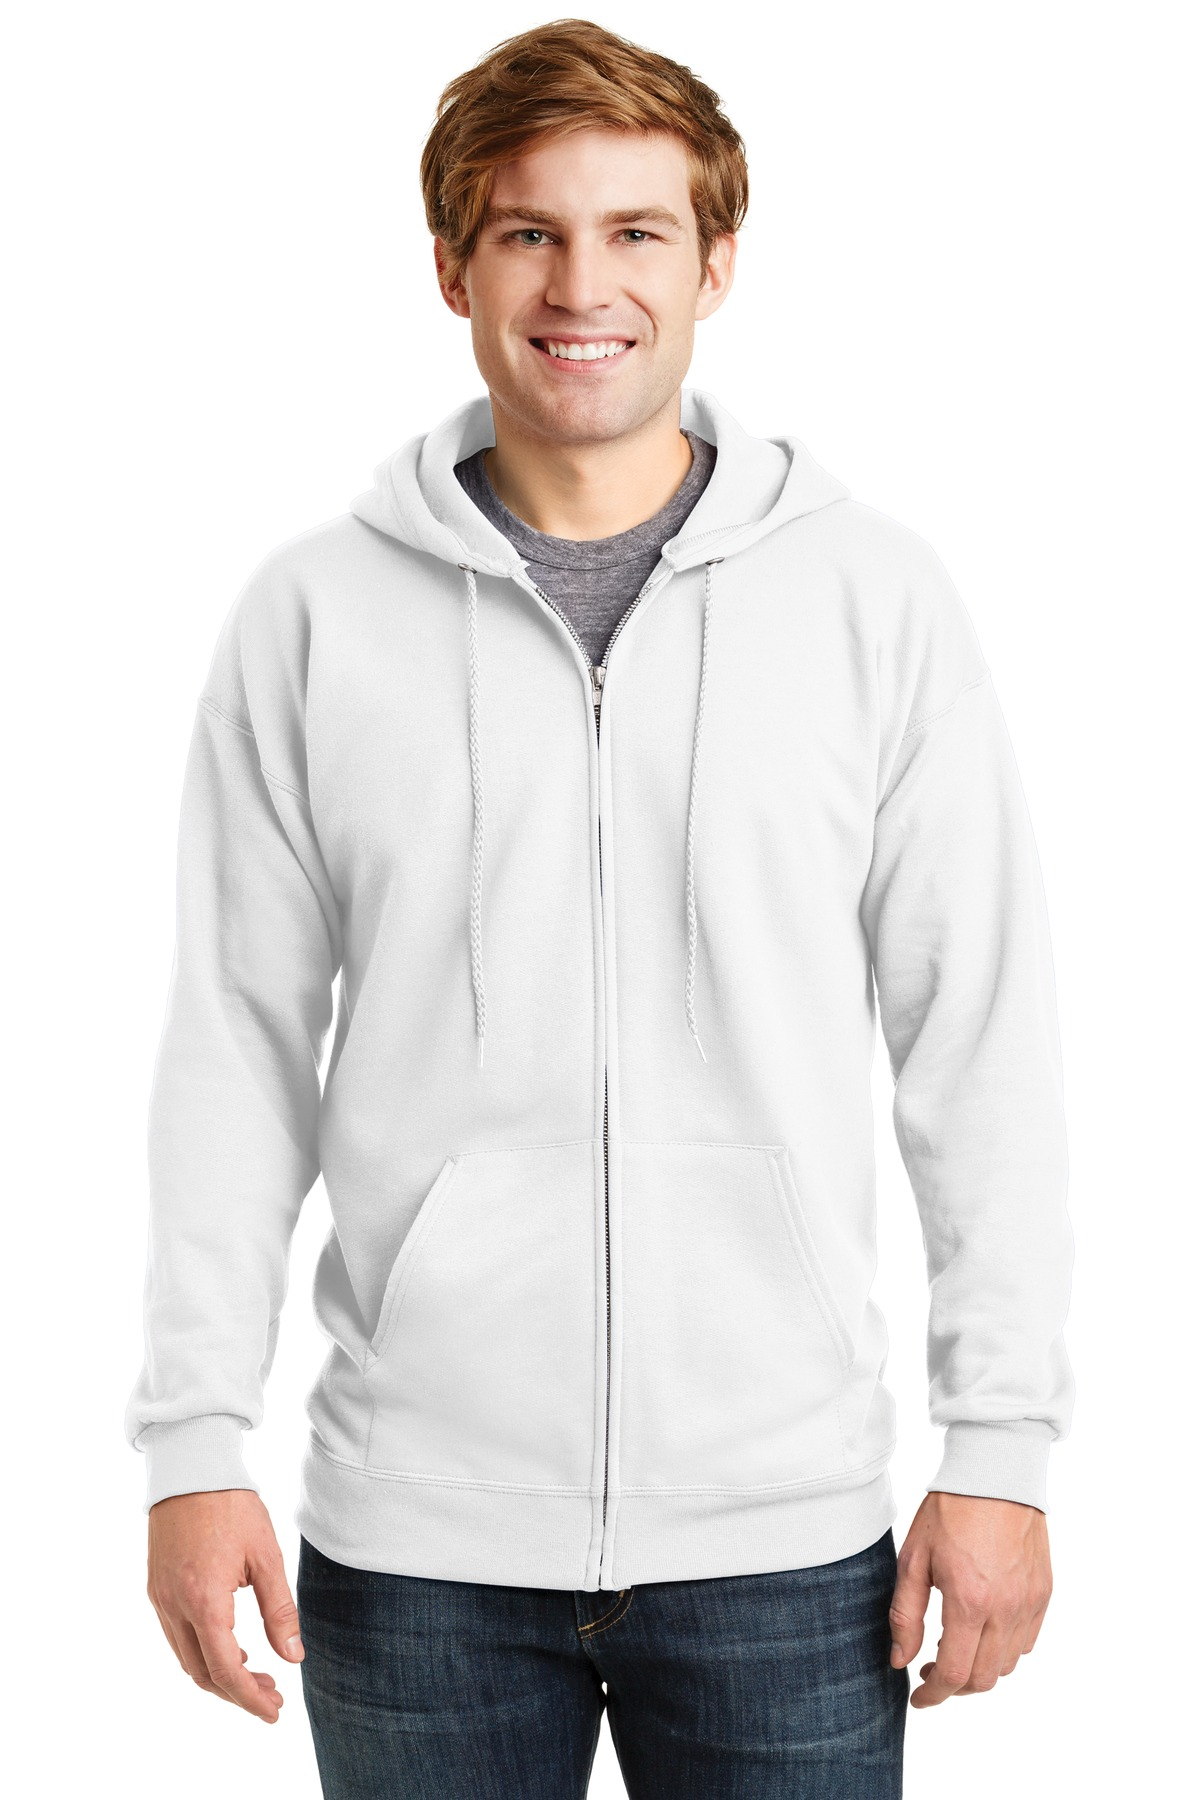 Hanes ®  Ultimate Cotton ®  - Full-Zip Hooded Sweatshirt.  F283 - White